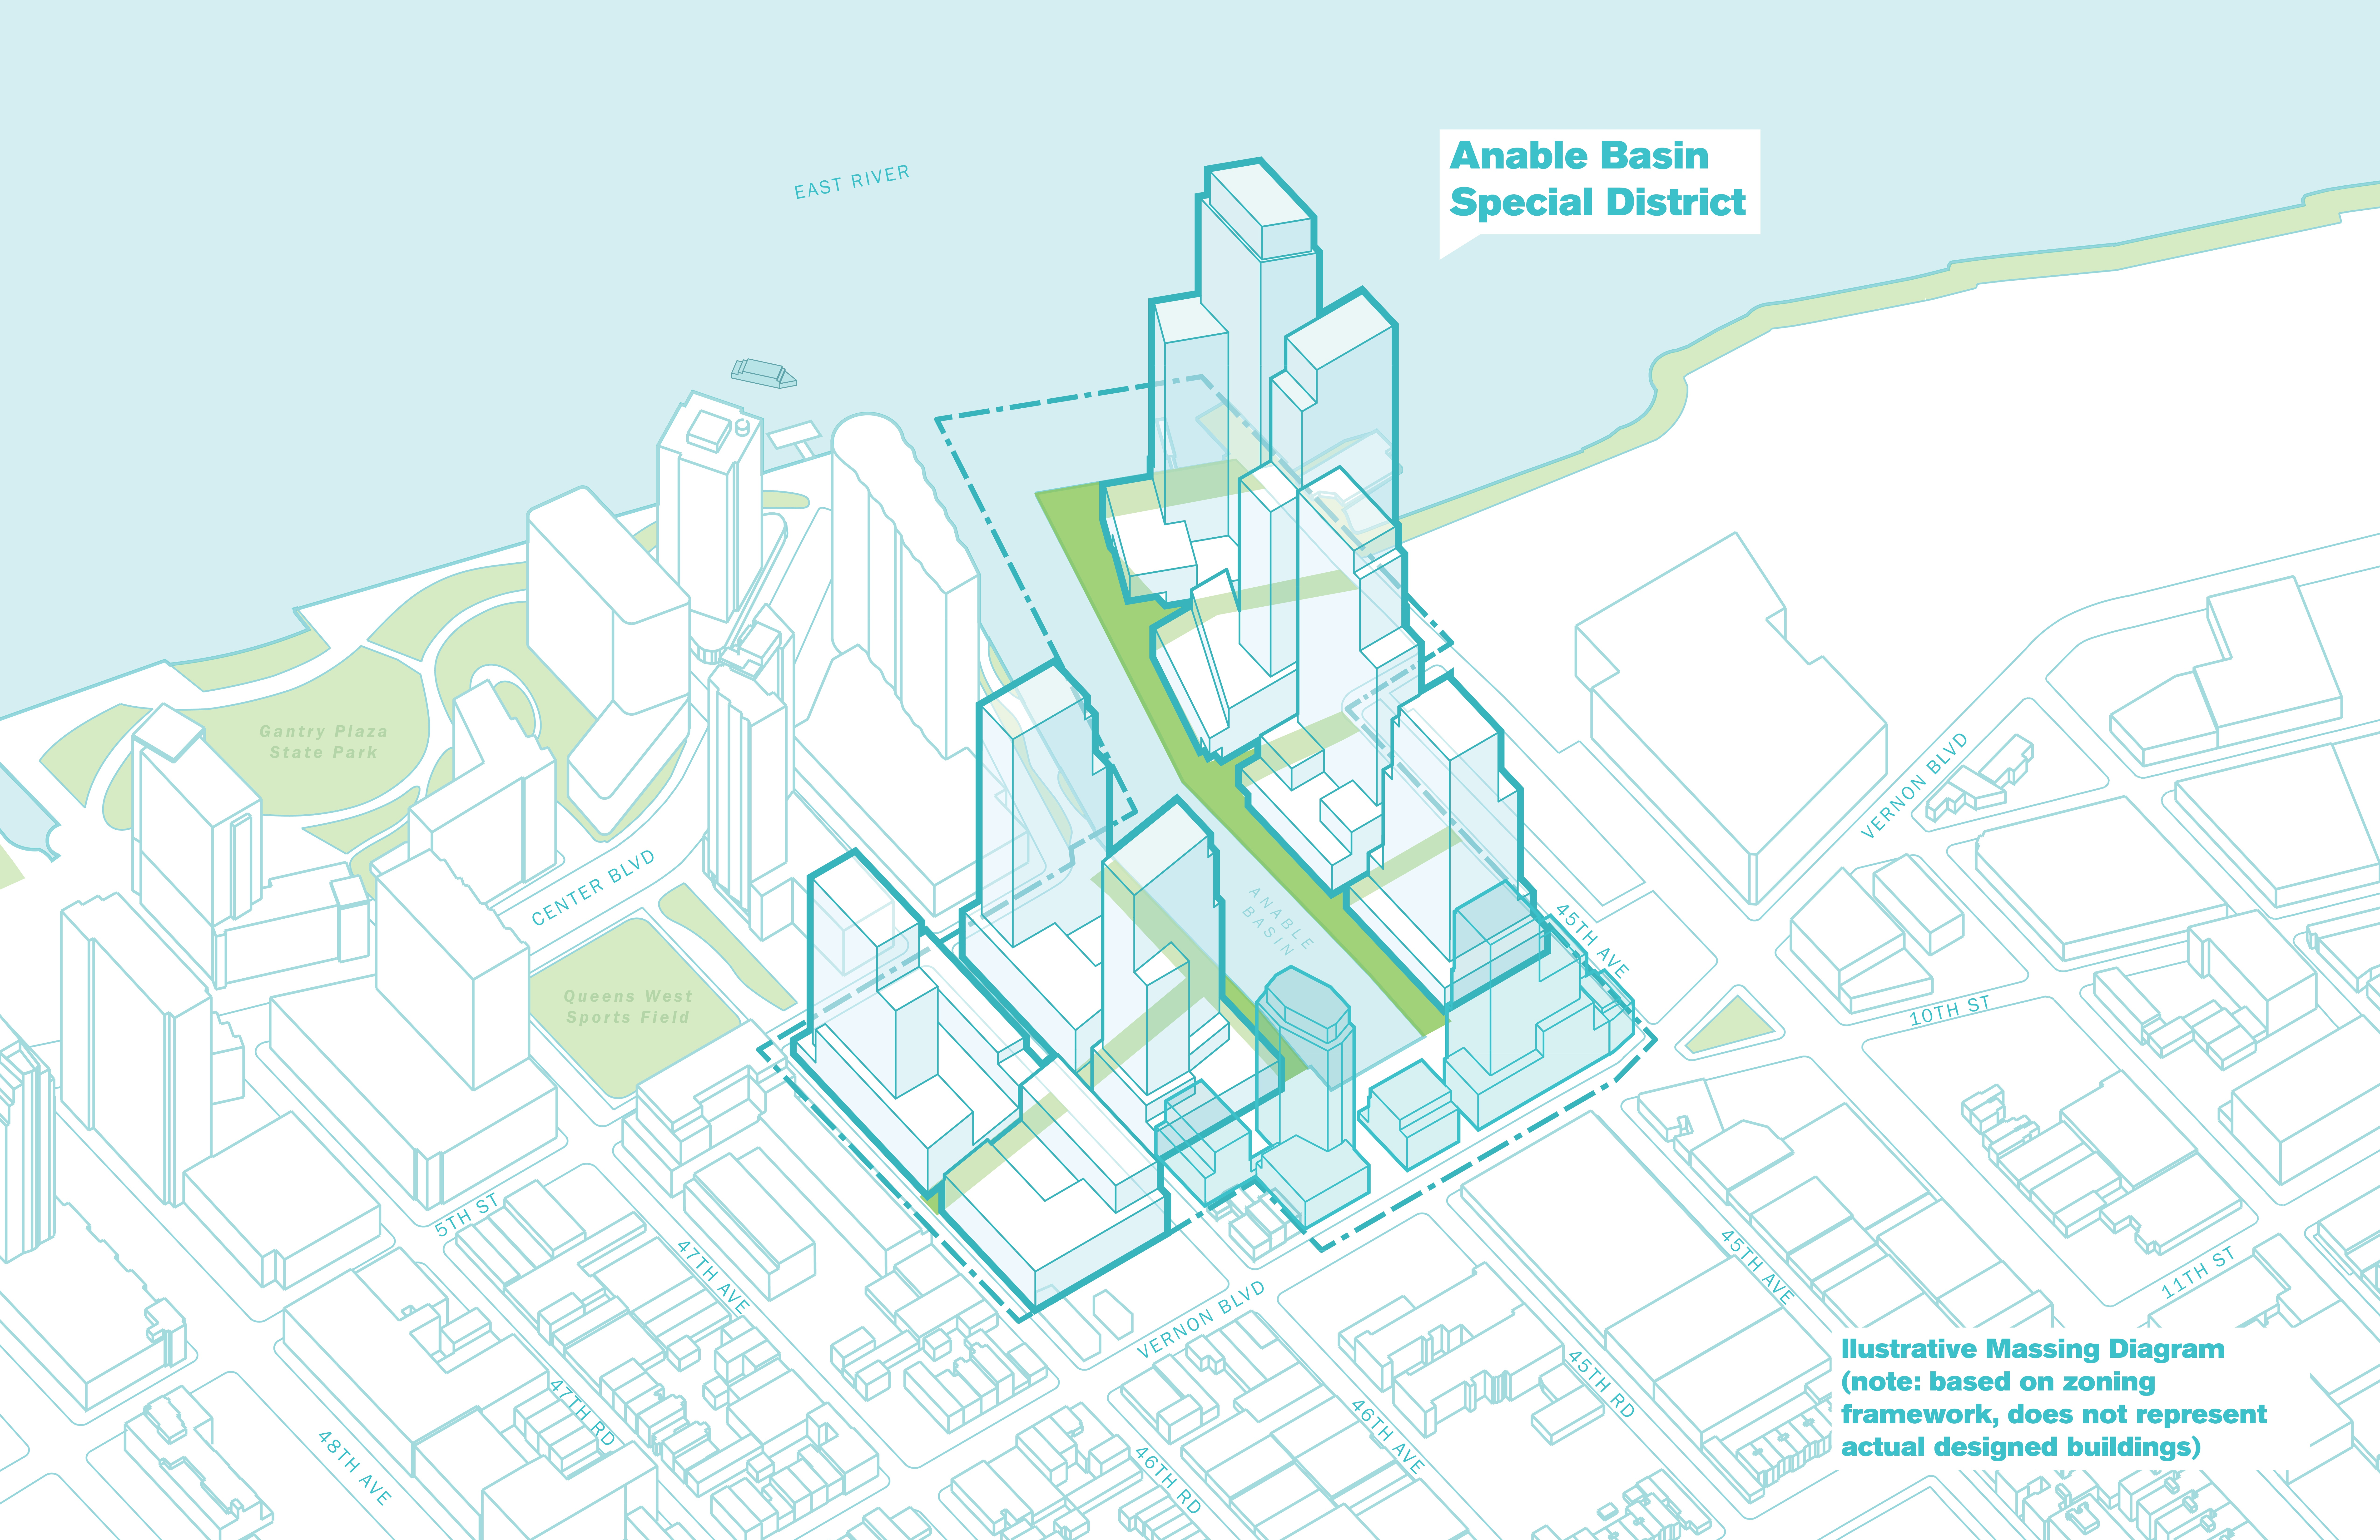 Amazon looking at proposed Anable Basin mixed-use site for new home on 44th parallel map, 45th parallel south, 37 parallel map, 45 parallel map, 48th parallel map, 38th parallel north, 42nd parallel north, 35th parallel map, 48th parallel north, 35th parallel north, 60th parallel north, 45 degrees latitude map, 49th parallel north, circle of latitude, 23rd parallel map, 24th parallel map, 33 parallel map, 50th parallel north, 22nd parallel map, 47th parallel north, 32nd parallel map, northern michigan upper peninsula map, antarctic circle, 55th parallel map, 44th parallel north, 40th parallel north, angle inlet, 10th parallel map, 37th parallel north, tropic of cancer, 46th parallel map, 43rd parallel north, 33rd parallel north, 25th parallel map, 37th parallel map, 30th parallel north, 20th parallel map, 53rd parallel map, 30th parallel map,